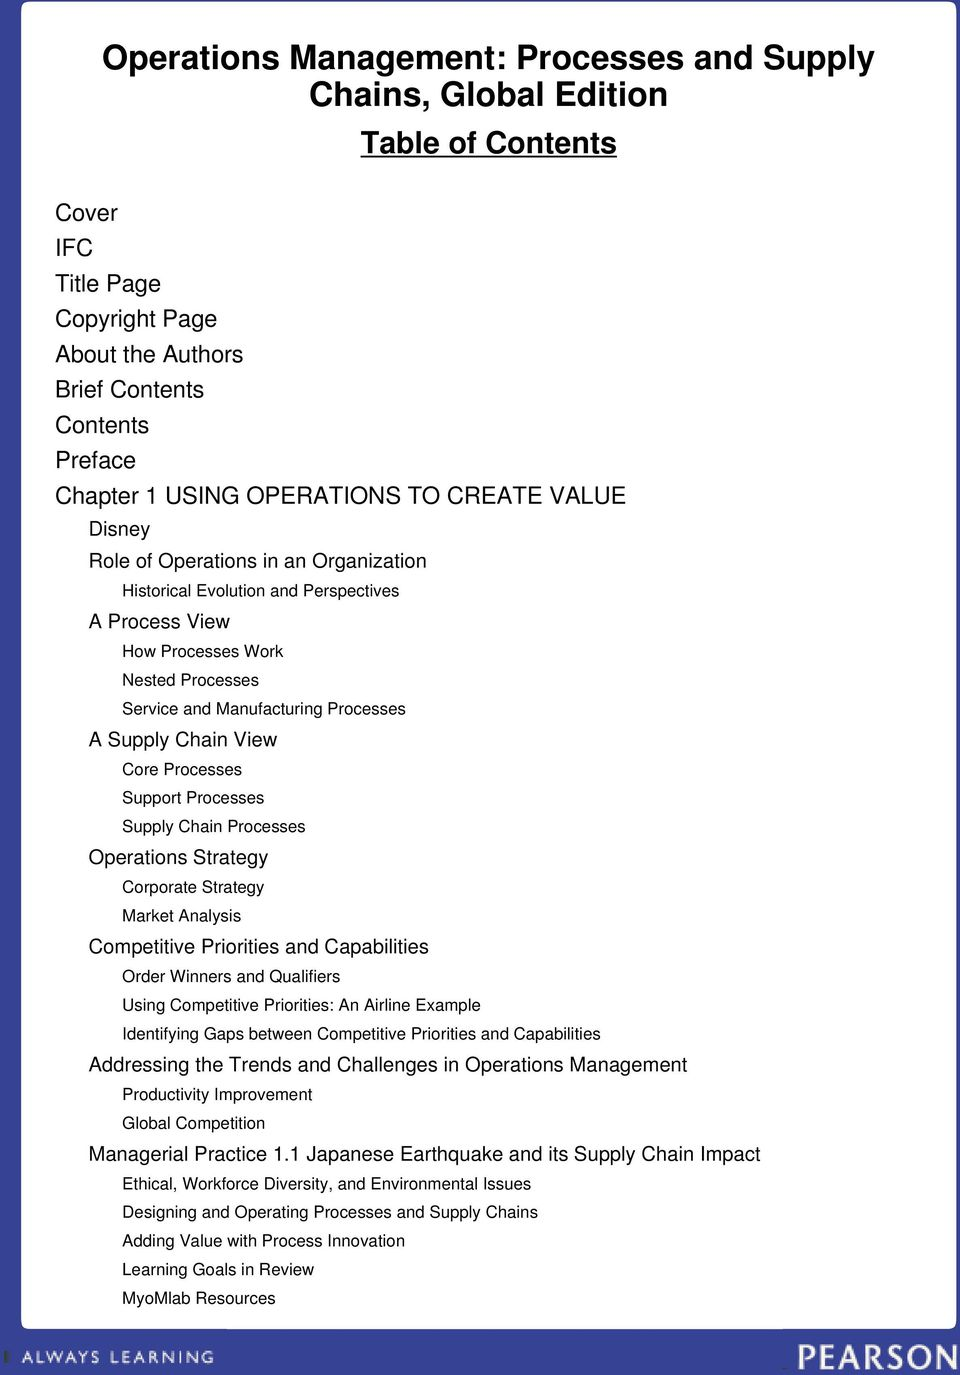 Operations Management - PDF